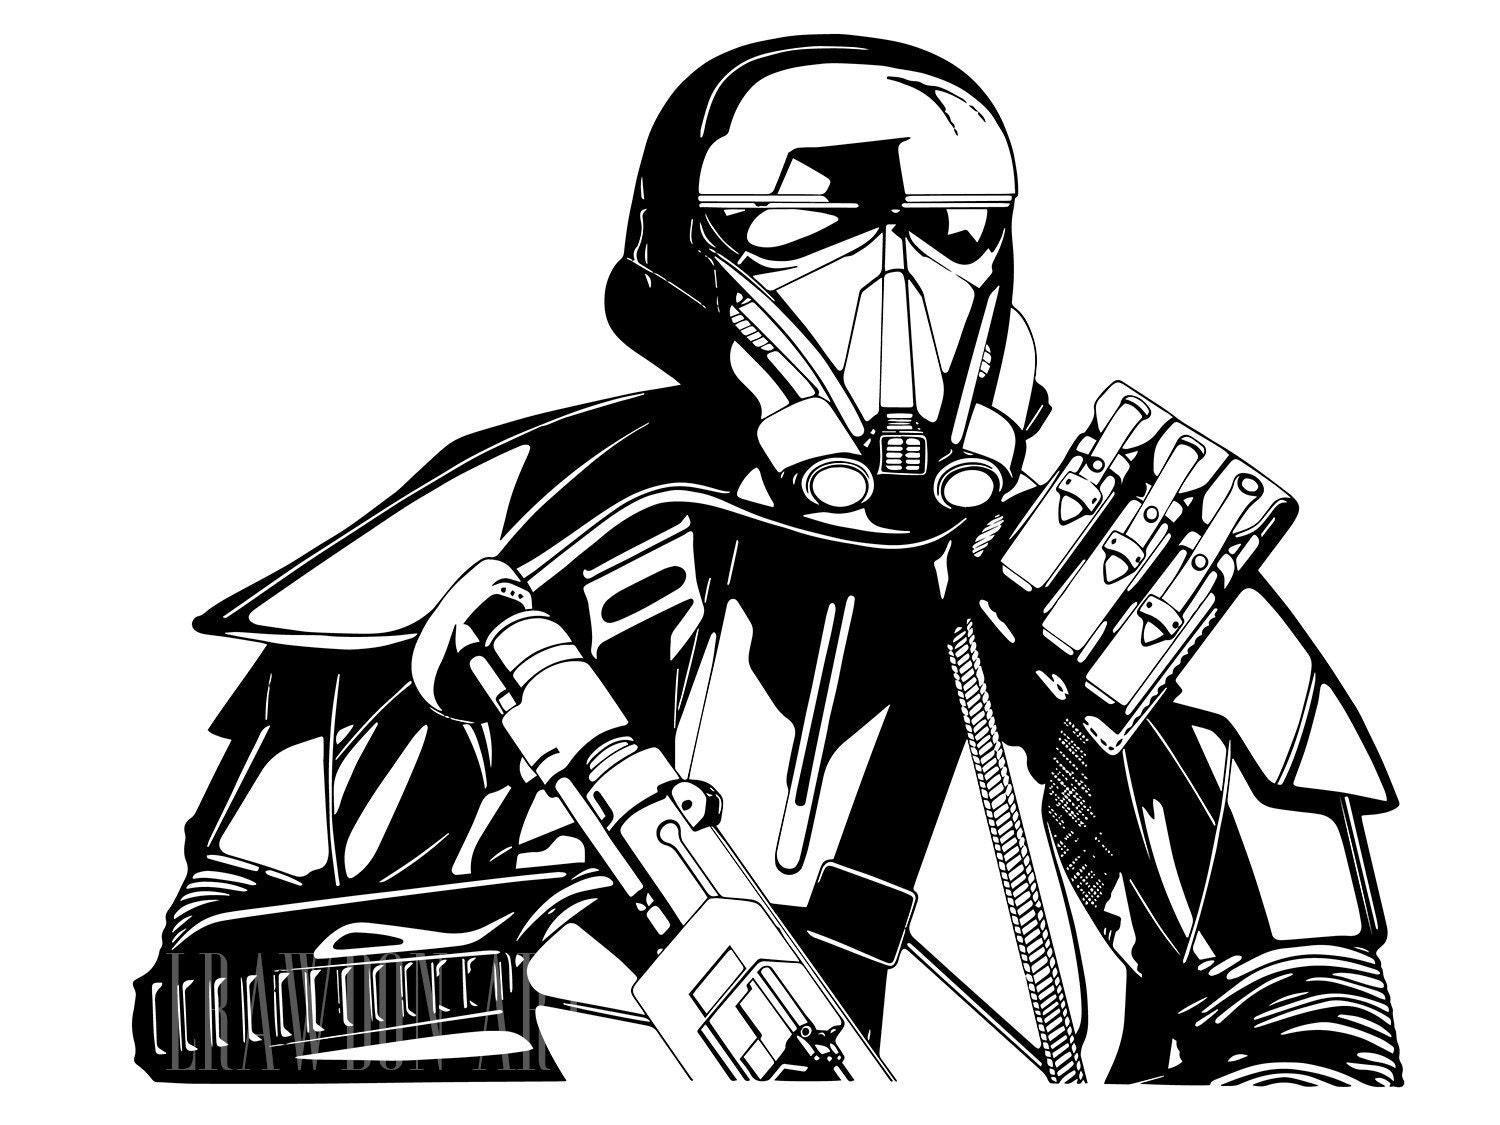 Fine Line Art : Imperial death trooper black & white ink portrait fine art